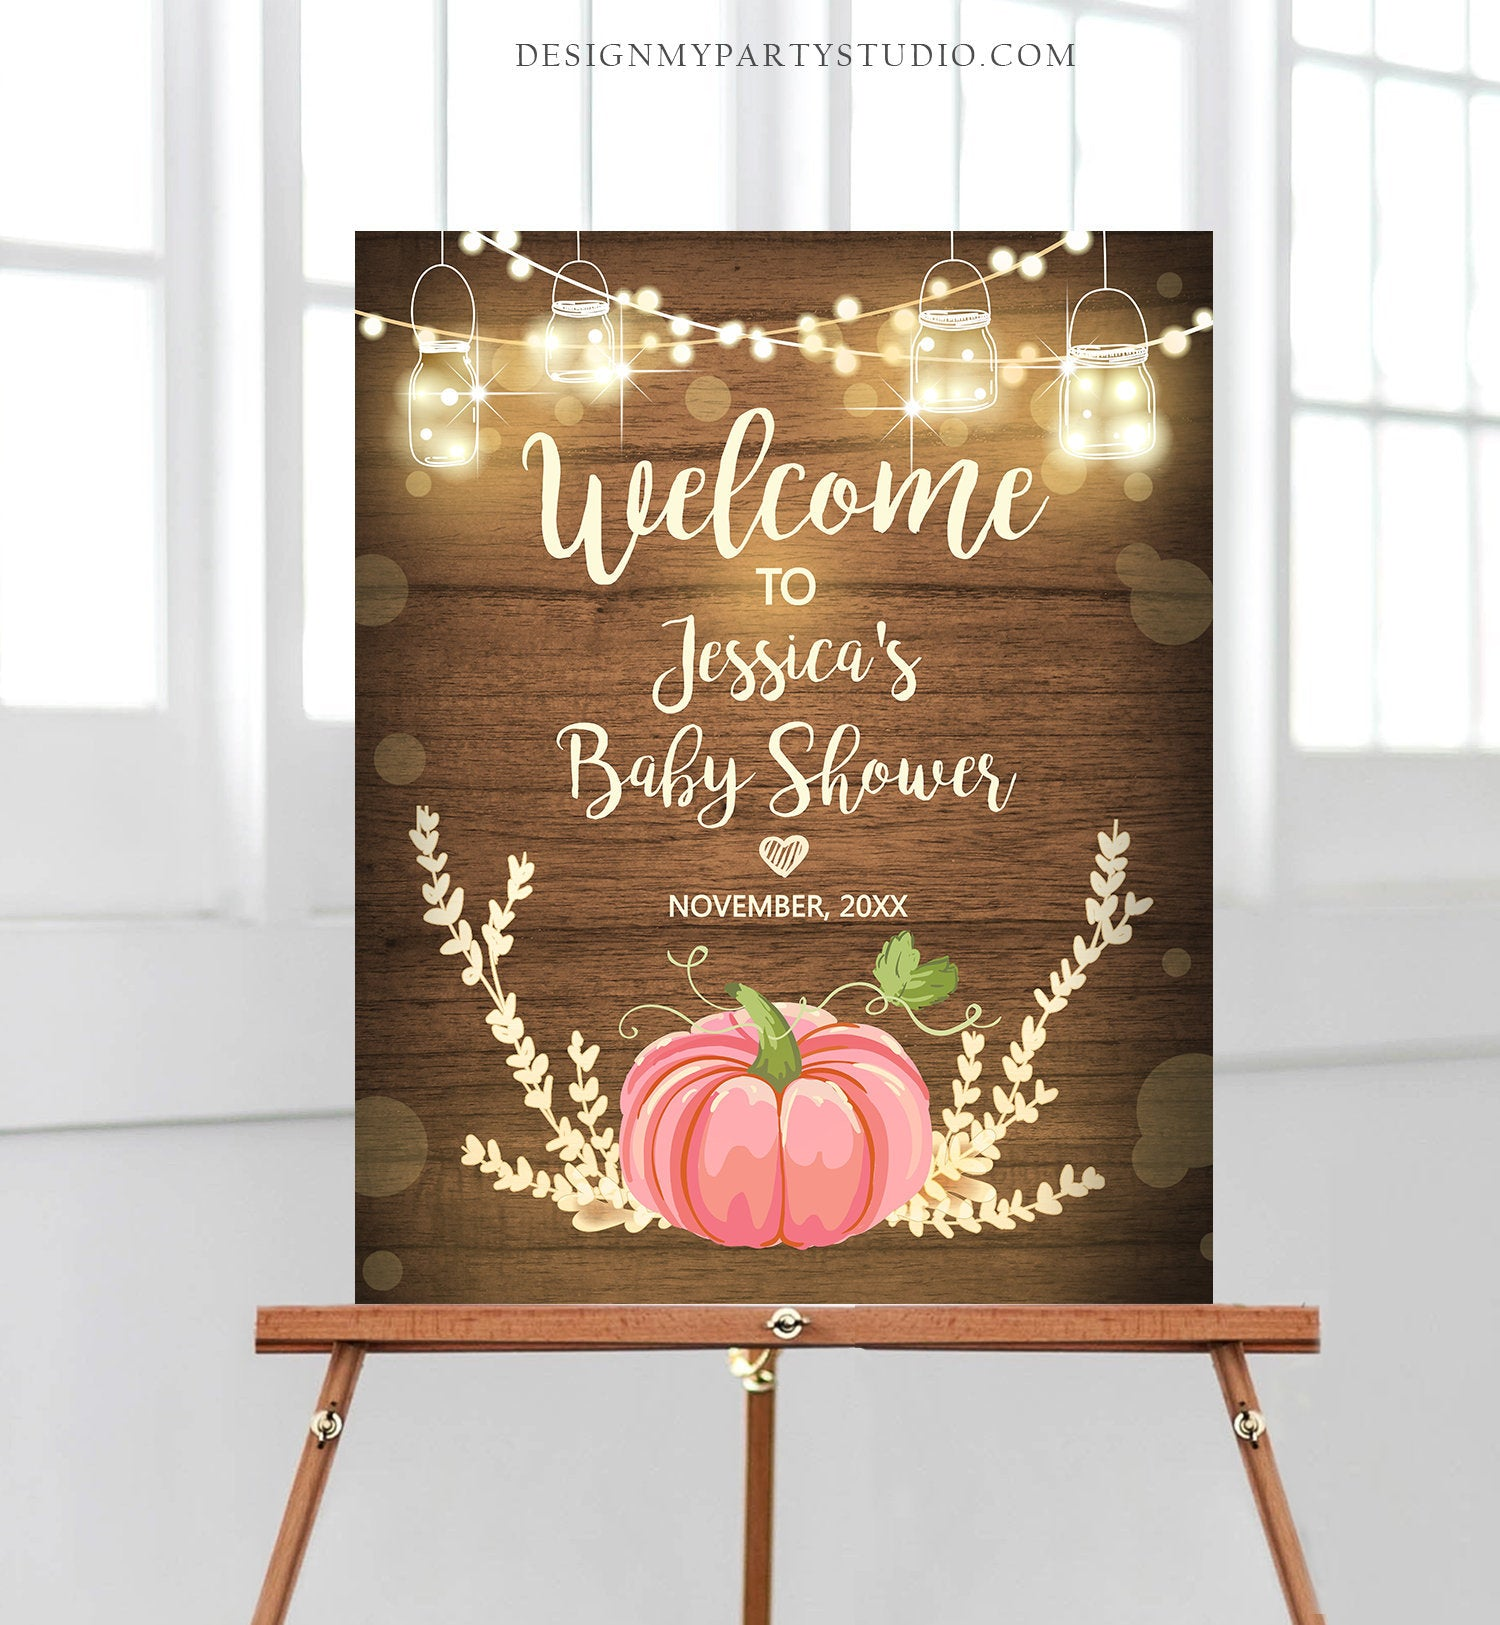 Editable Pink Pumpkin Baby Shower Welcome Sign Rustic Wood Girl Birthday Couples Shower Fall Autumn Pumpkin Party Corjl Template 0015